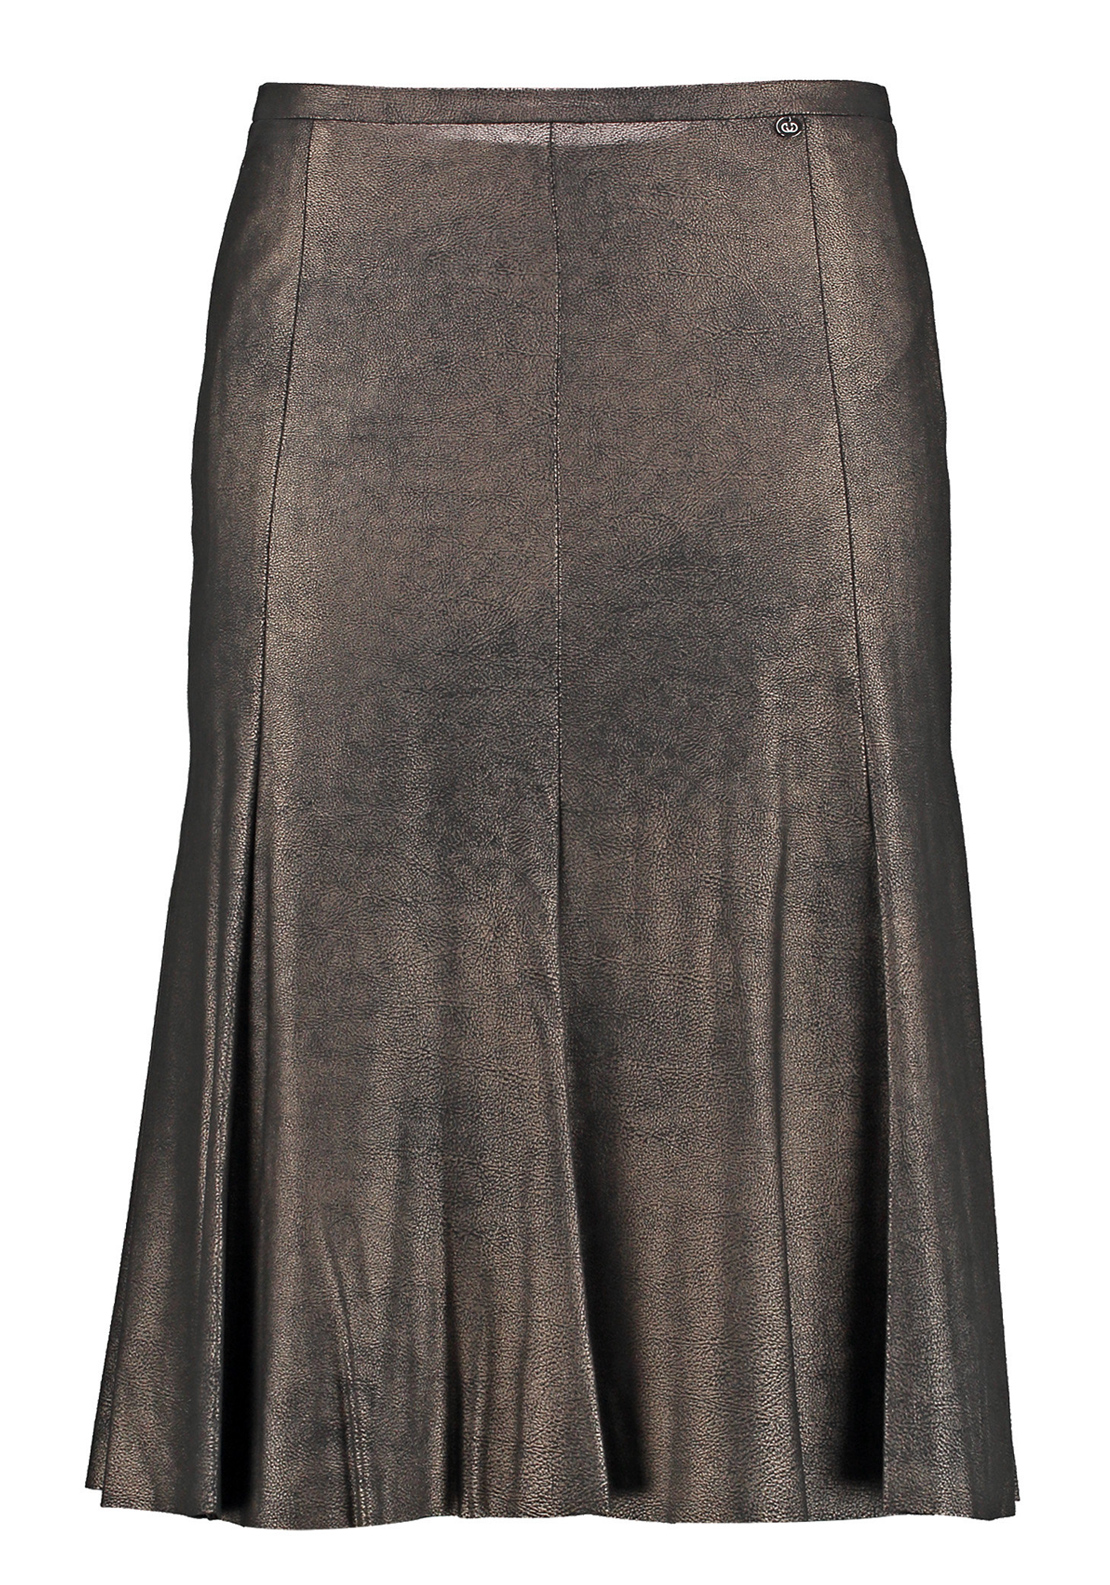 Gerry Weber Metallic Shimmer Leather Look Flared Midi Skirt, Brown